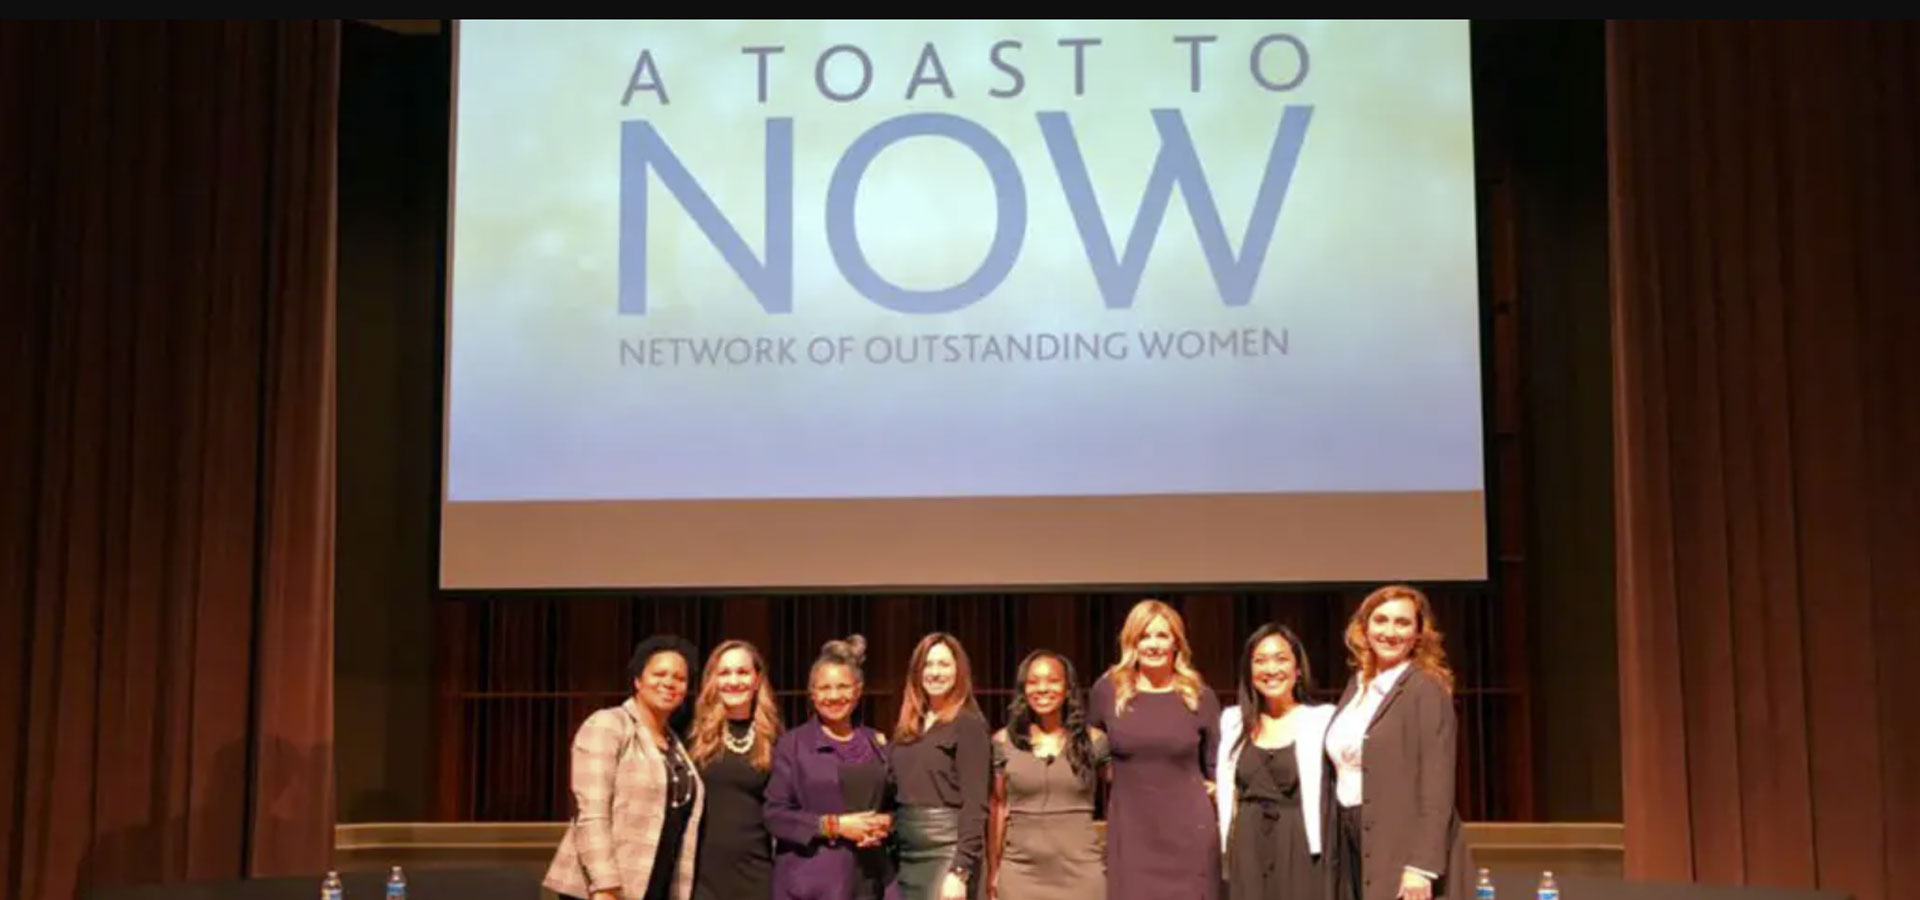 Our Very Own Outstanding Women of Inspiration